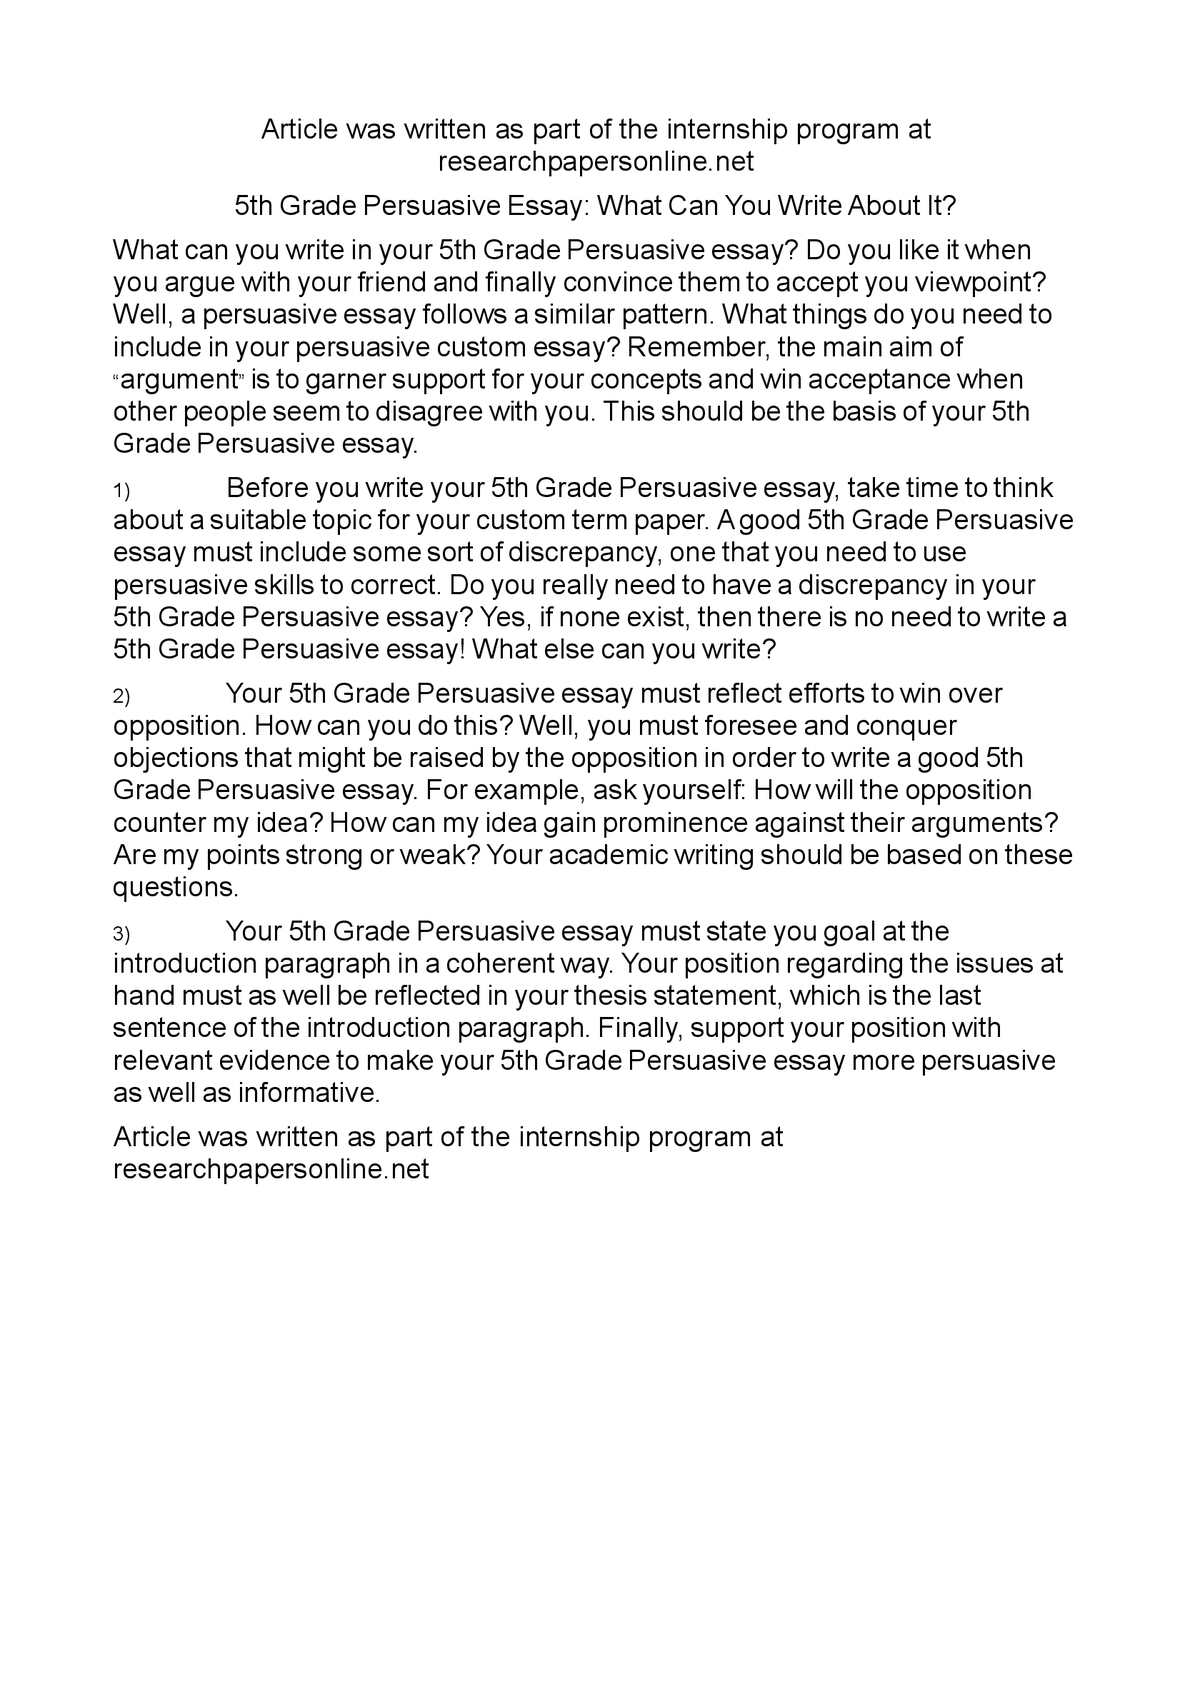 005 Persuasive Essay Writing For 5th Grade Example Impressive Essays Written By Fifth Graders Sample A Full